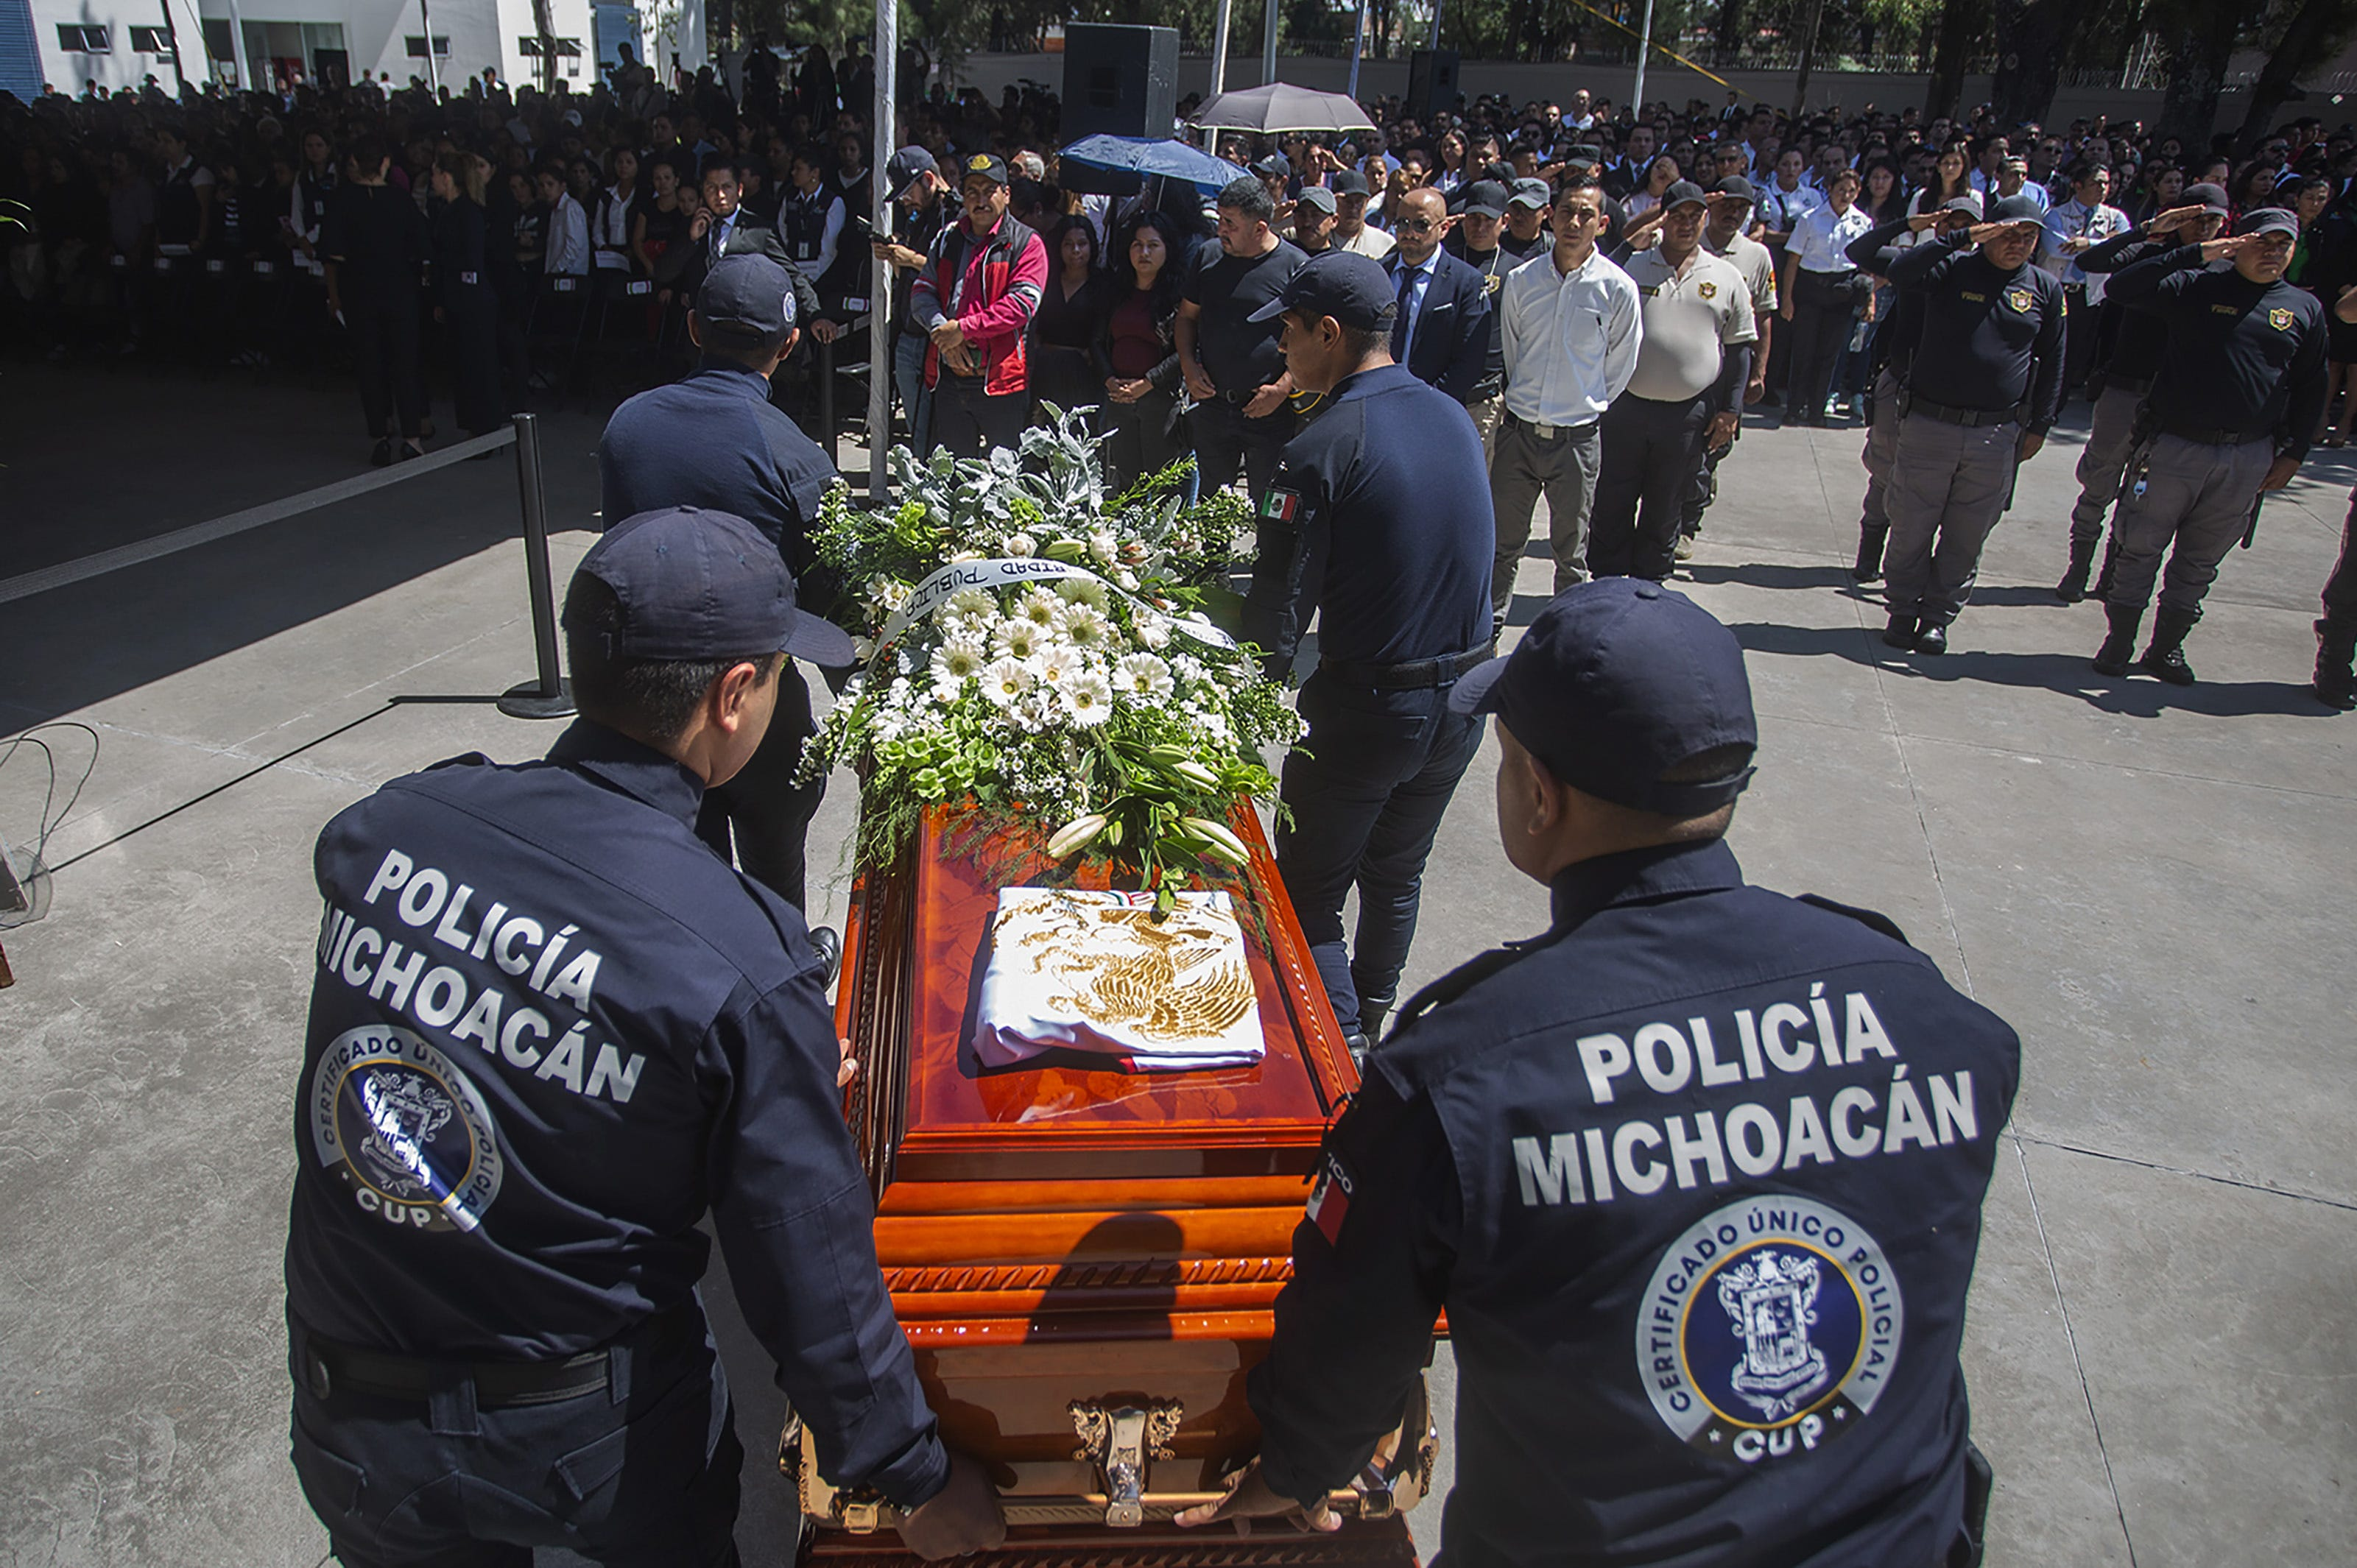 Relatives and members of the Michoacán police department pay tribute to 13 officers killed in an ambush on Oct. 14, 2019.